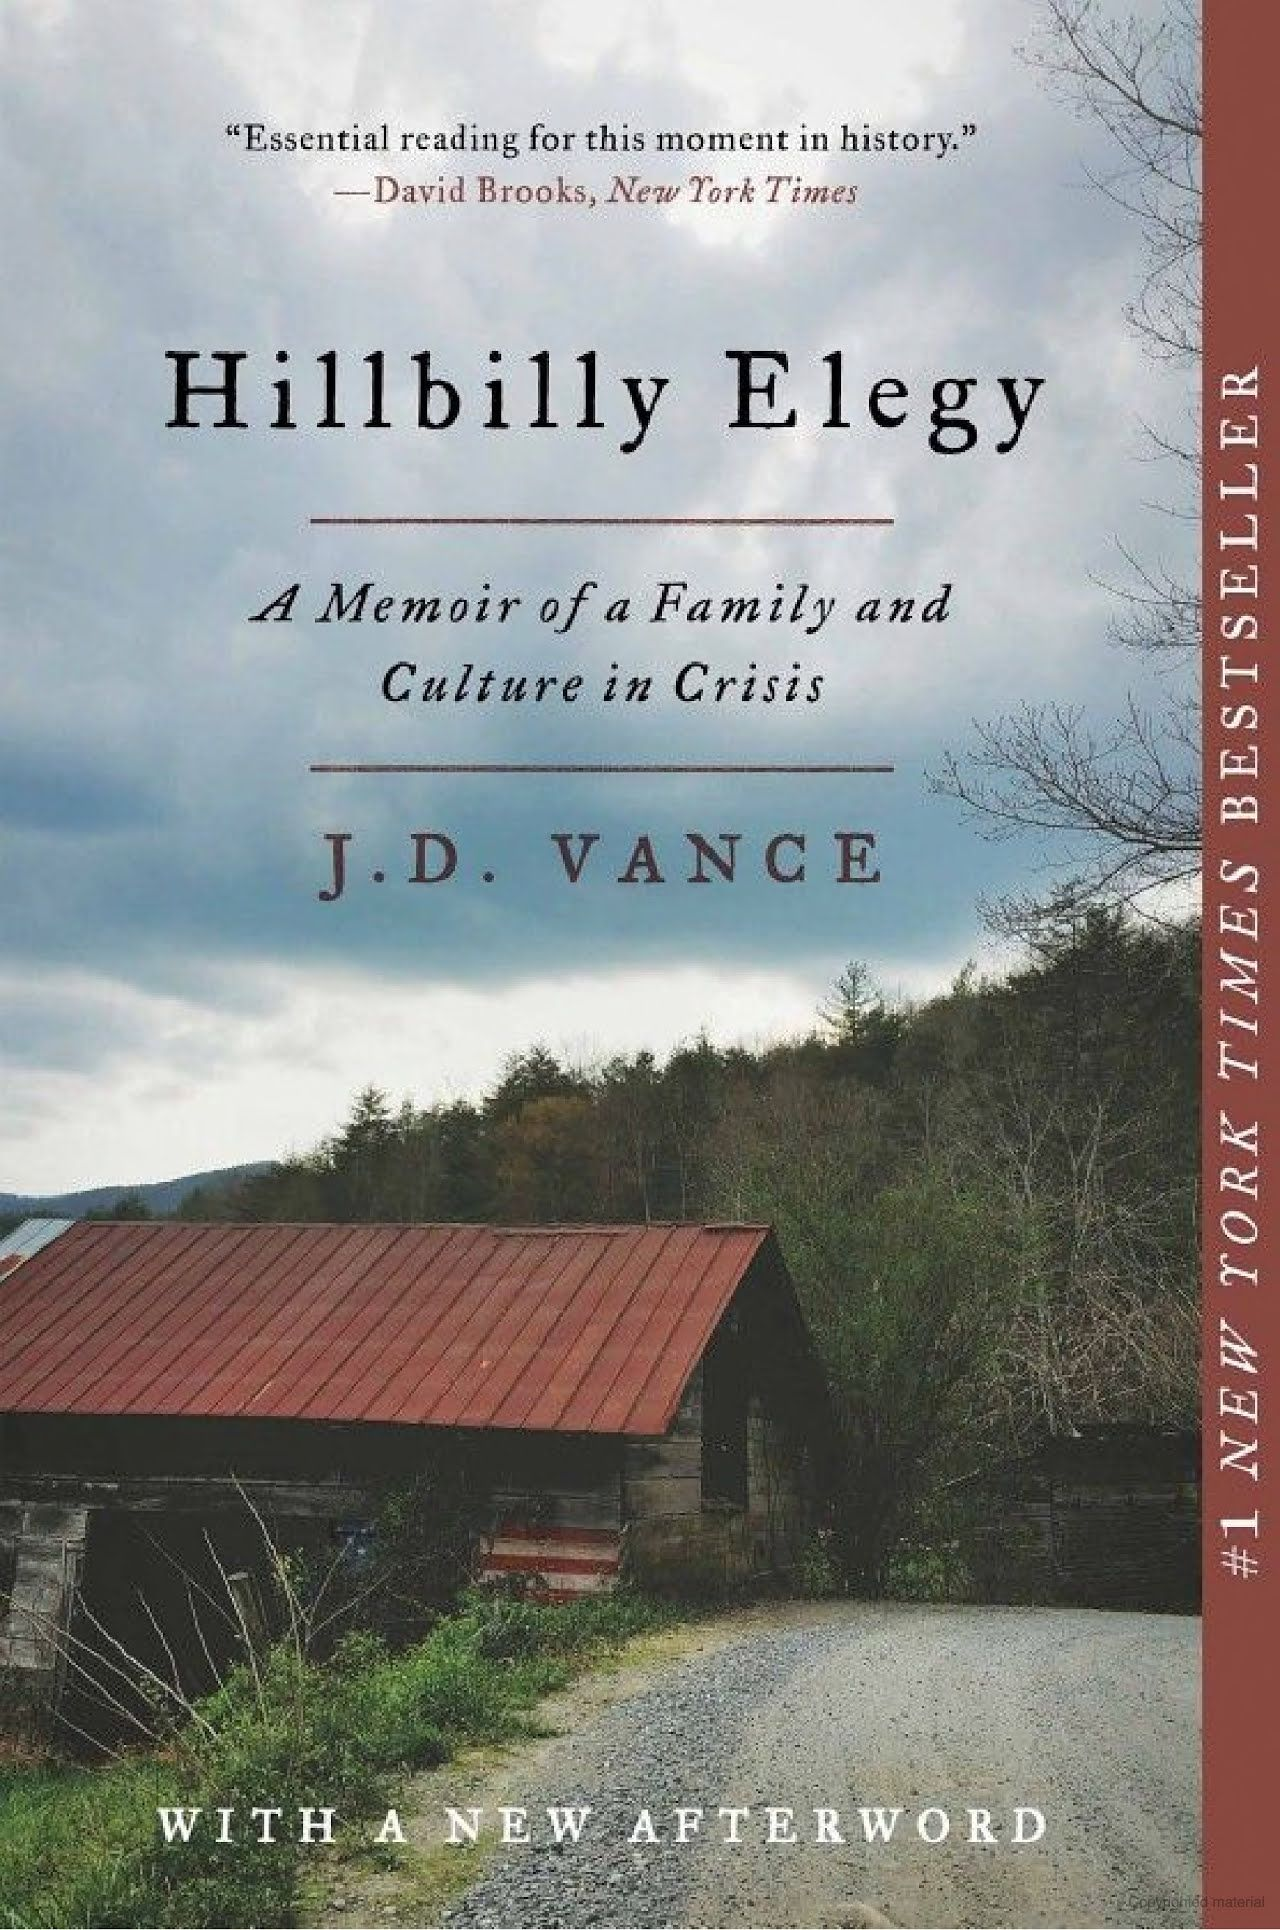 Hillbilly Elegy A Memoir Of A Family And Culture In Crisis J D Vance Google Books With Images Hillbilly Elegy Elegy Memoirs